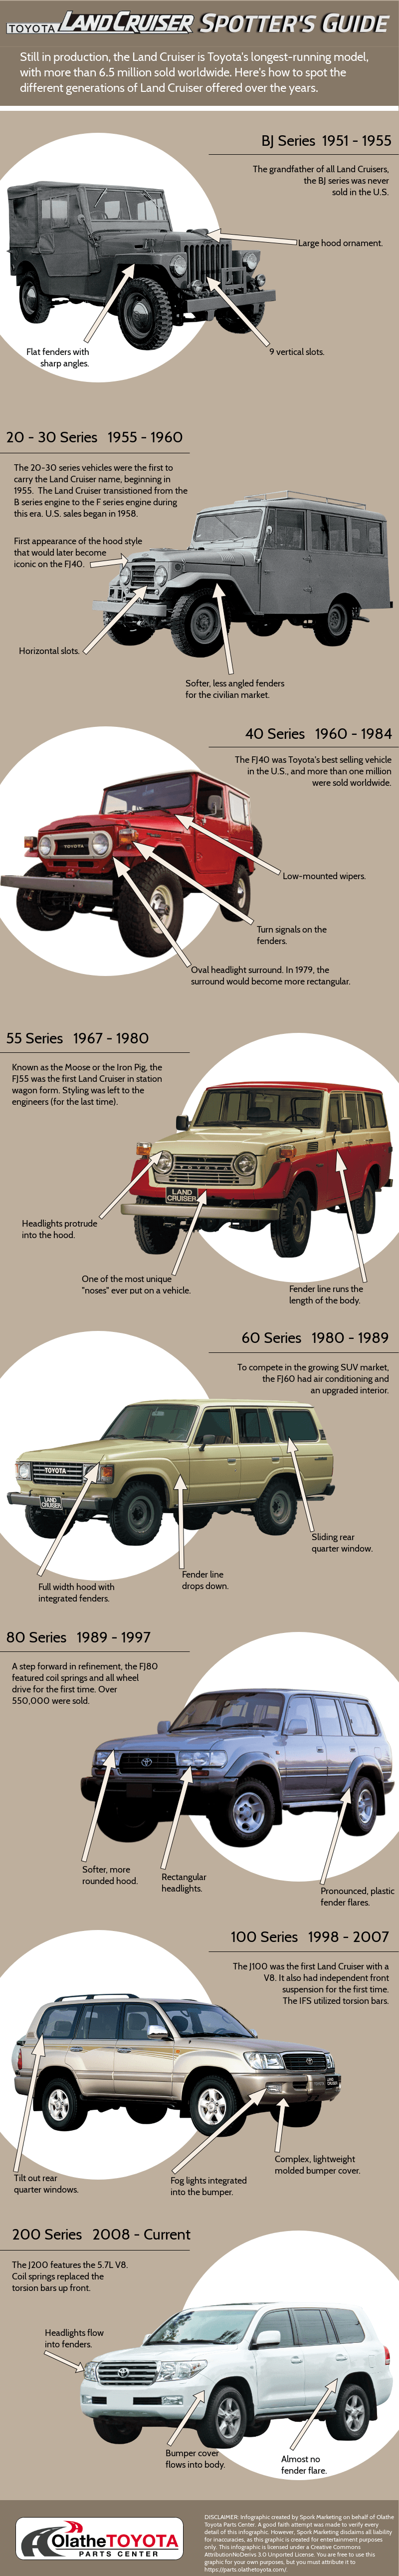 Toyota, Field guide: Through the generations with Toyota's Land Cruiser, ClassicCars.com Journal